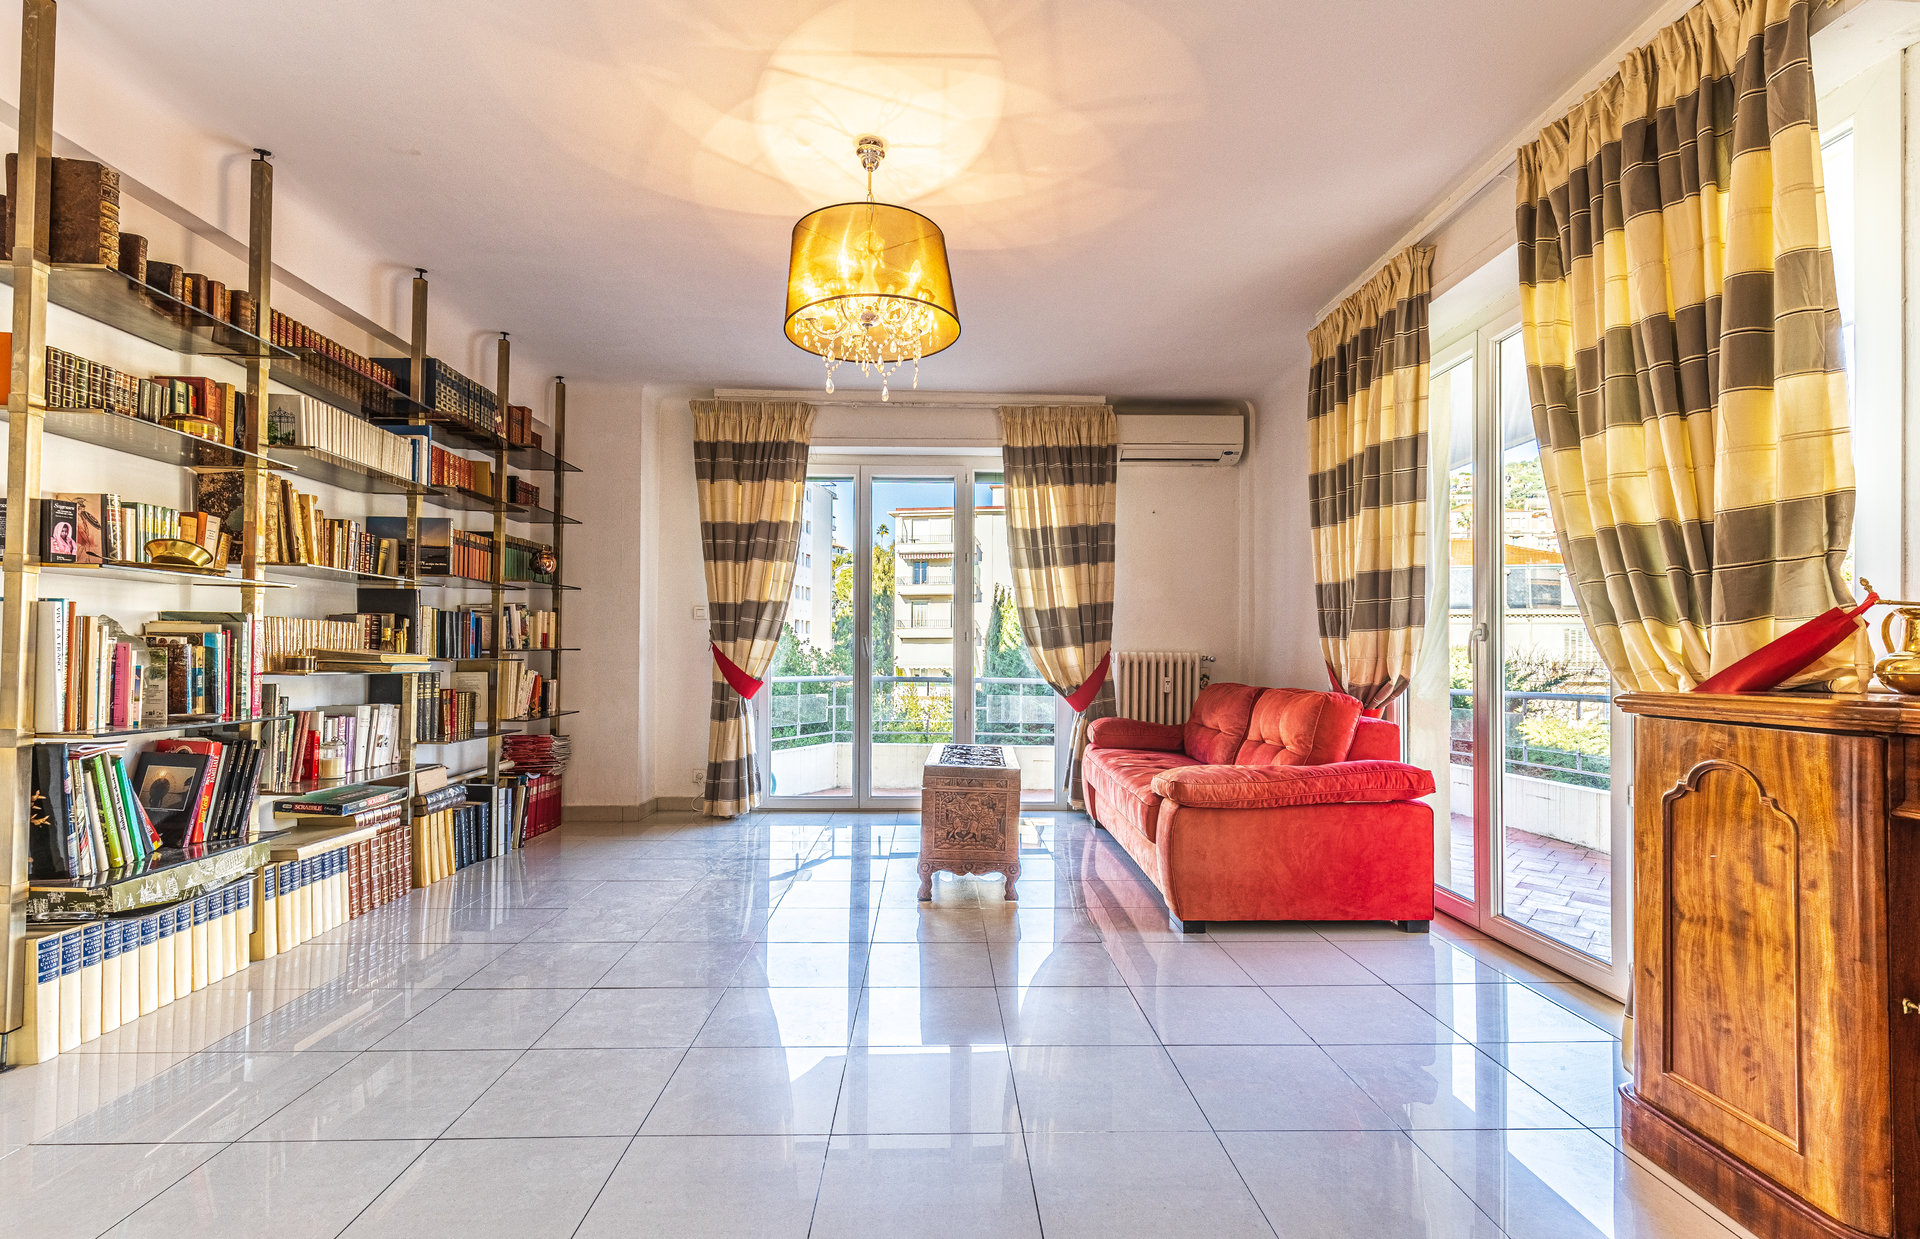 Two-bed apartment, large terrace, caretaker, parking, Basse Californie area in Cannes